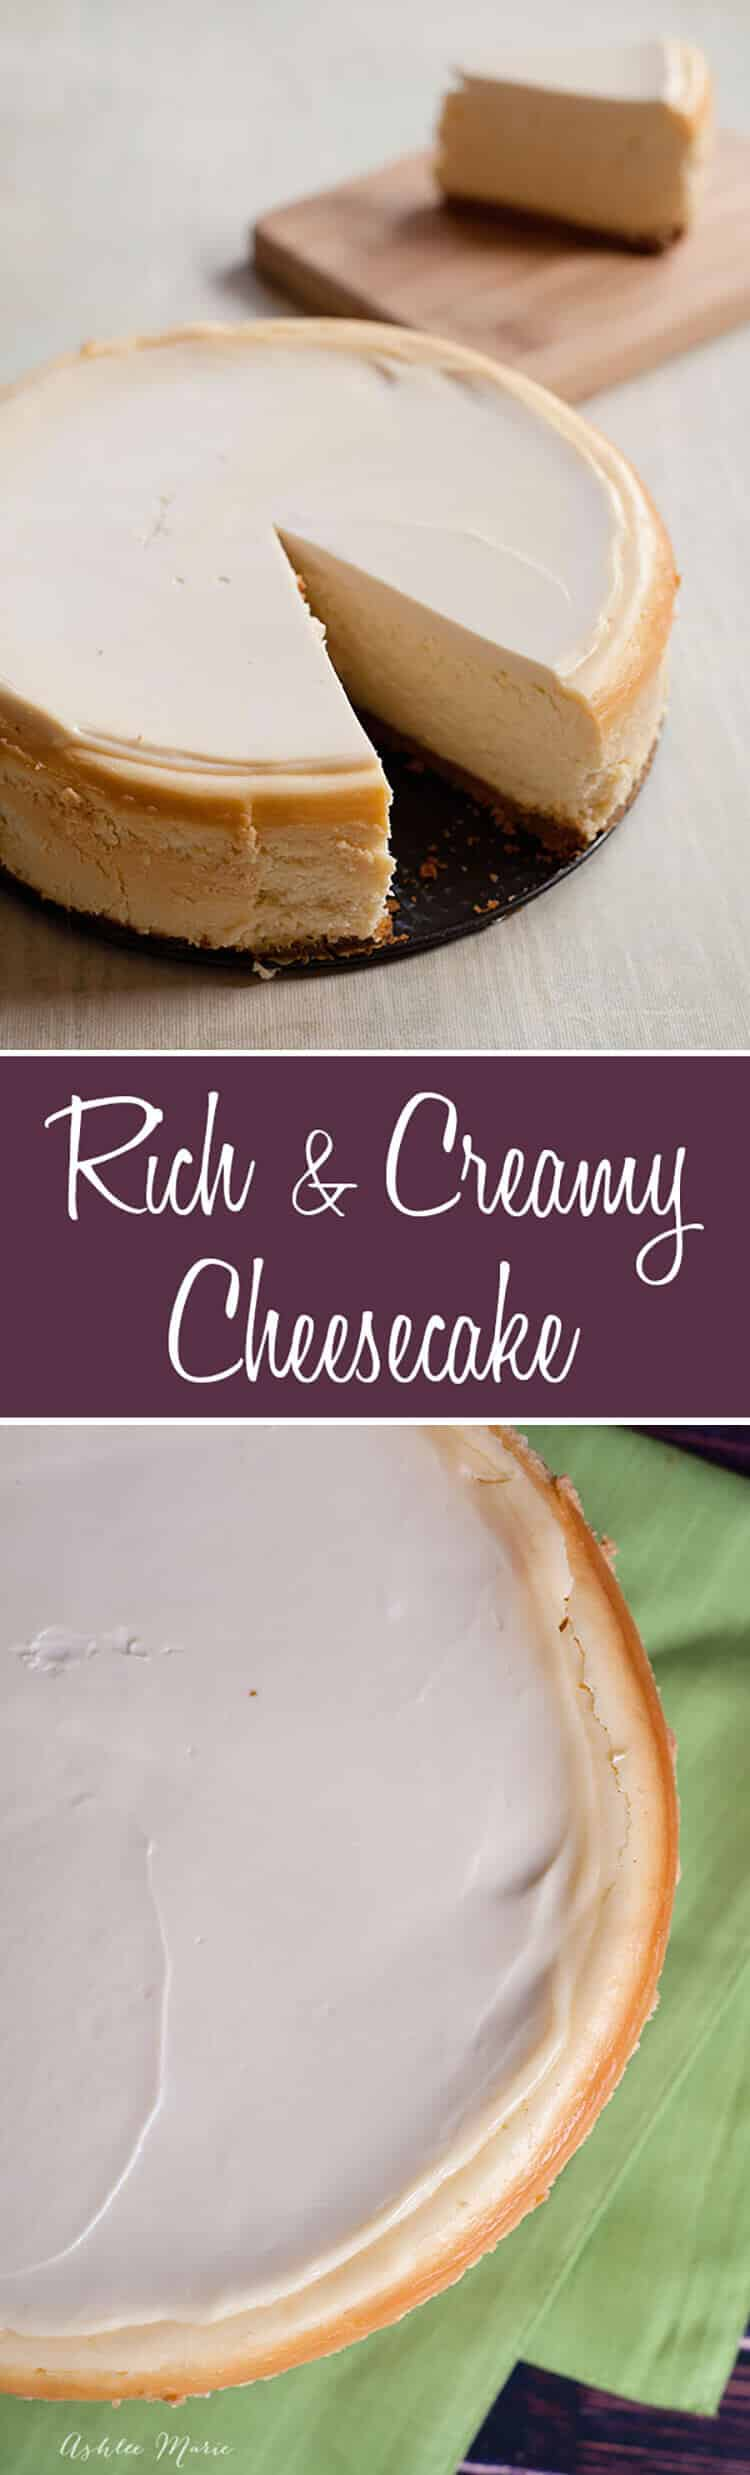 everyone loves cheesecake, a full video tutorial with the tips and tricks to get the perfect cheesecake with no cracks EVERY TIME